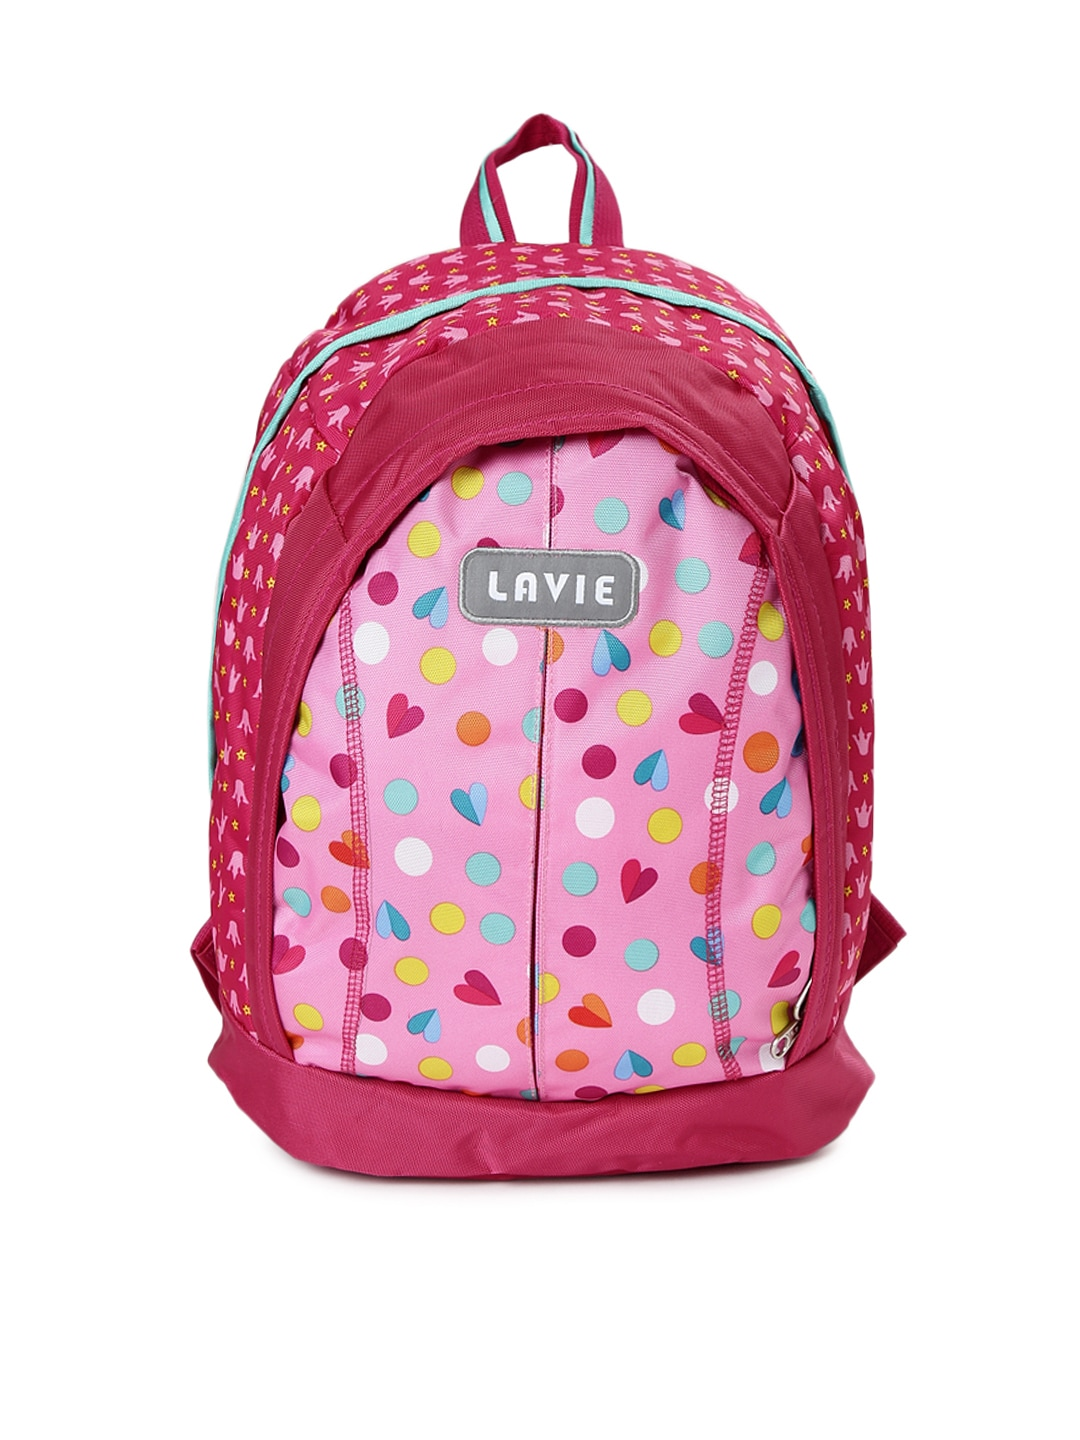 b480a53574f2 Backpacks For Girls - Buy Backpacks For Girls online in India